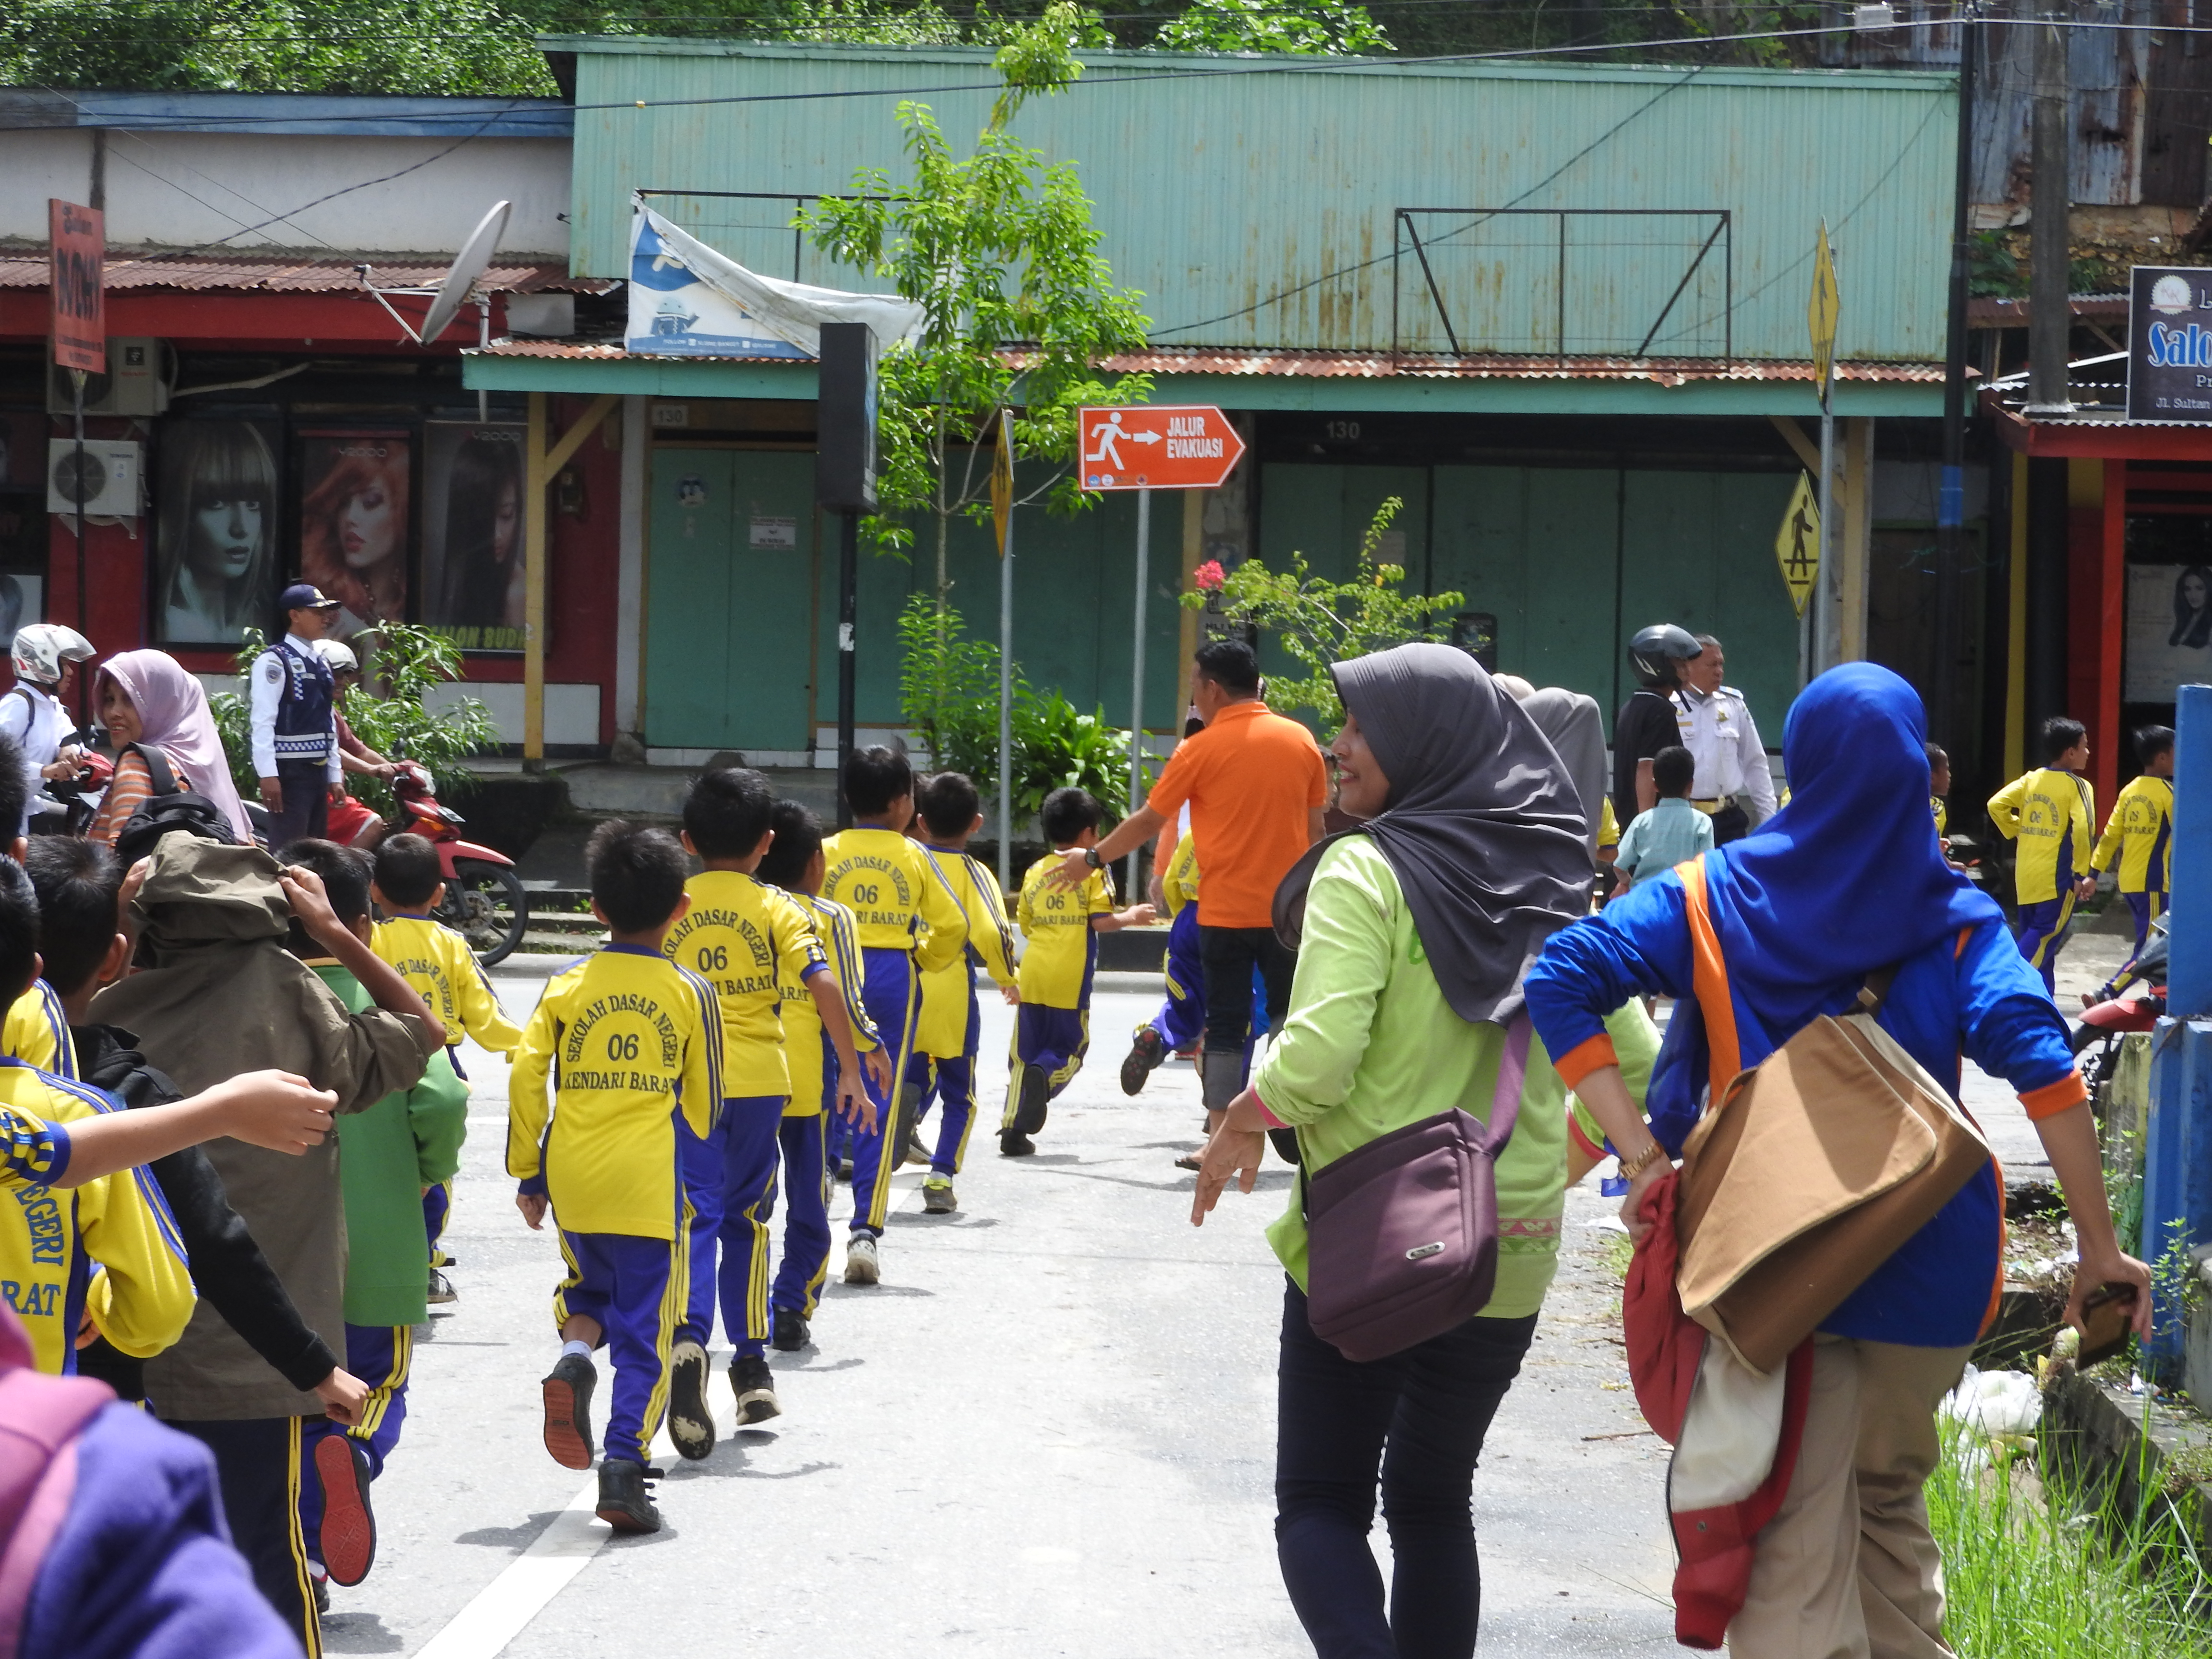 Children line up outside of a school after a disaster evacuation drill.